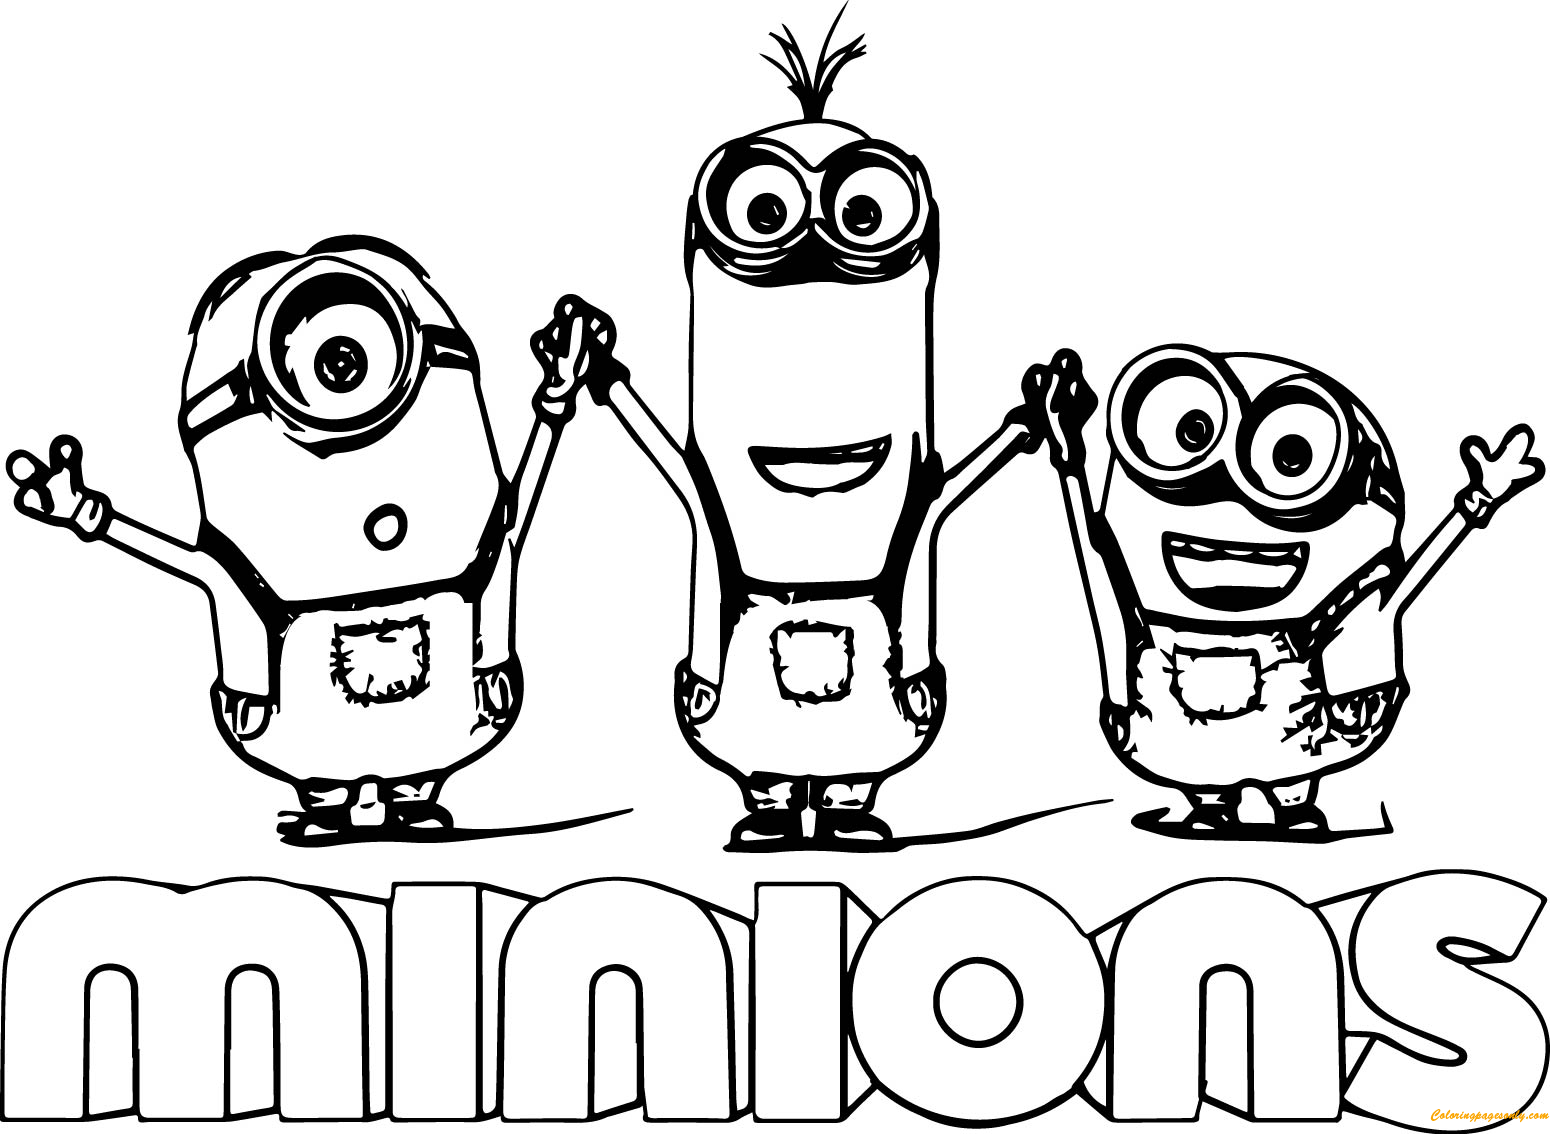 Free Minion Coloring Pages Minion Kevin With Two Minions Coloring Page  Free Coloring Pages